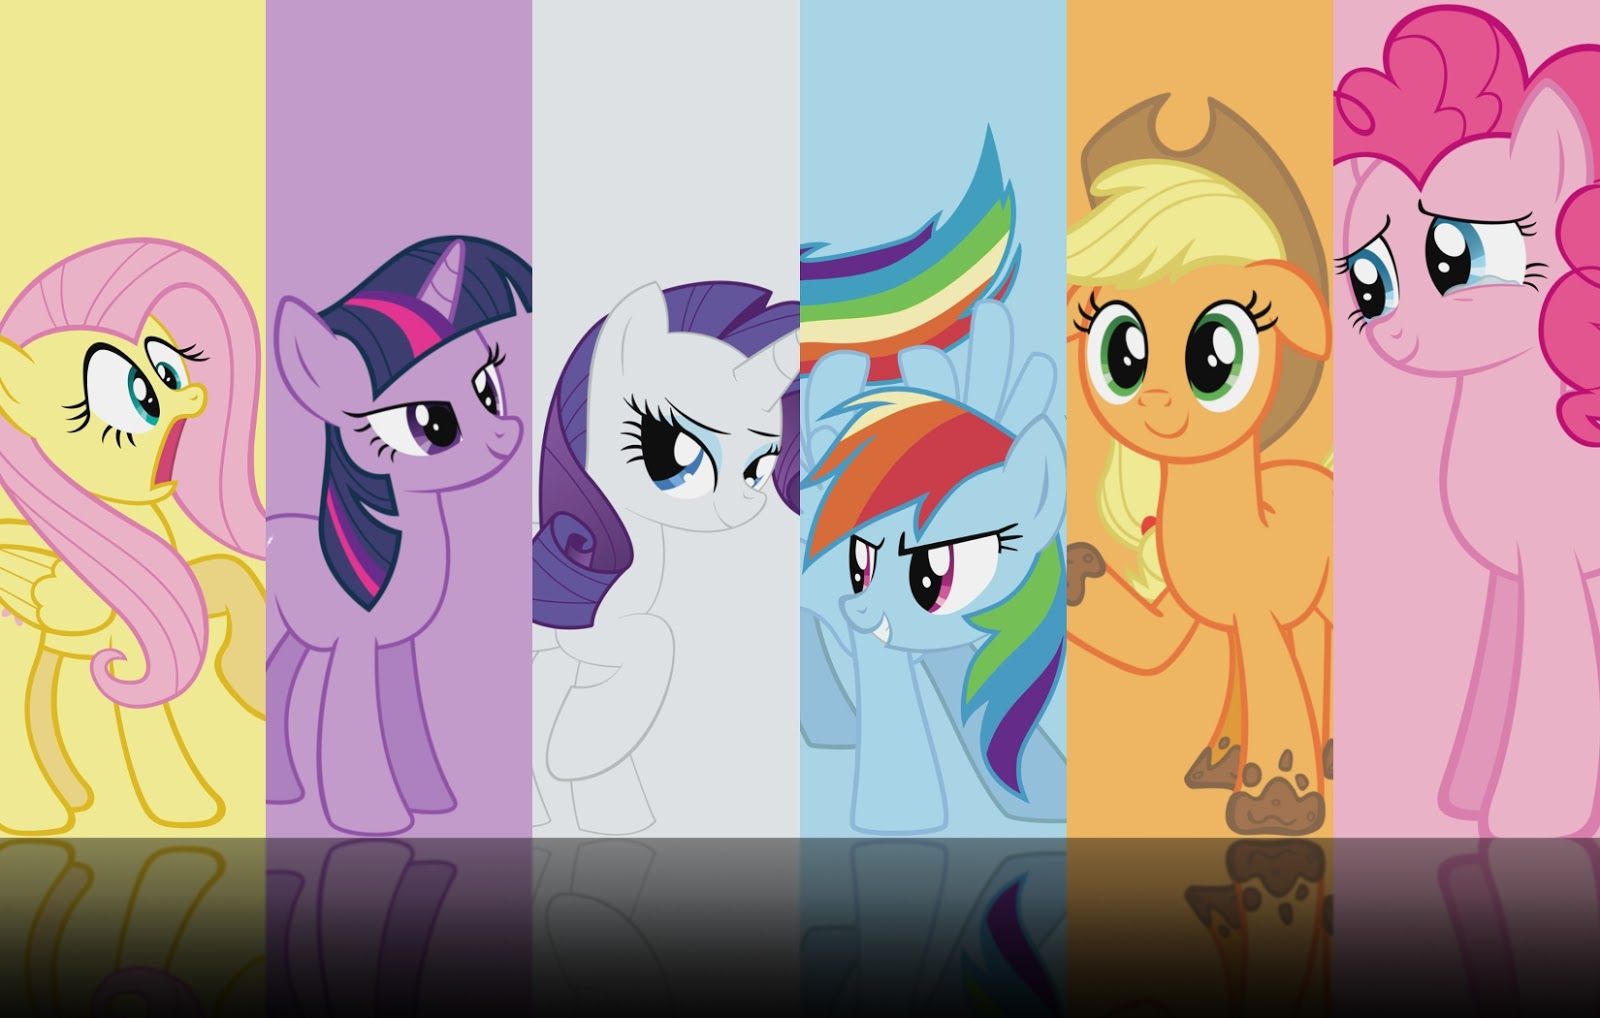 http://3.bp.blogspot.com/-WAbM3xgT_KE/UJB-dWuP82I/AAAAAAAAAlQ/UfSsPrB0hnU/s1600/my_little_pony_wallpaper_by_syljon-d4si7mc.jpg